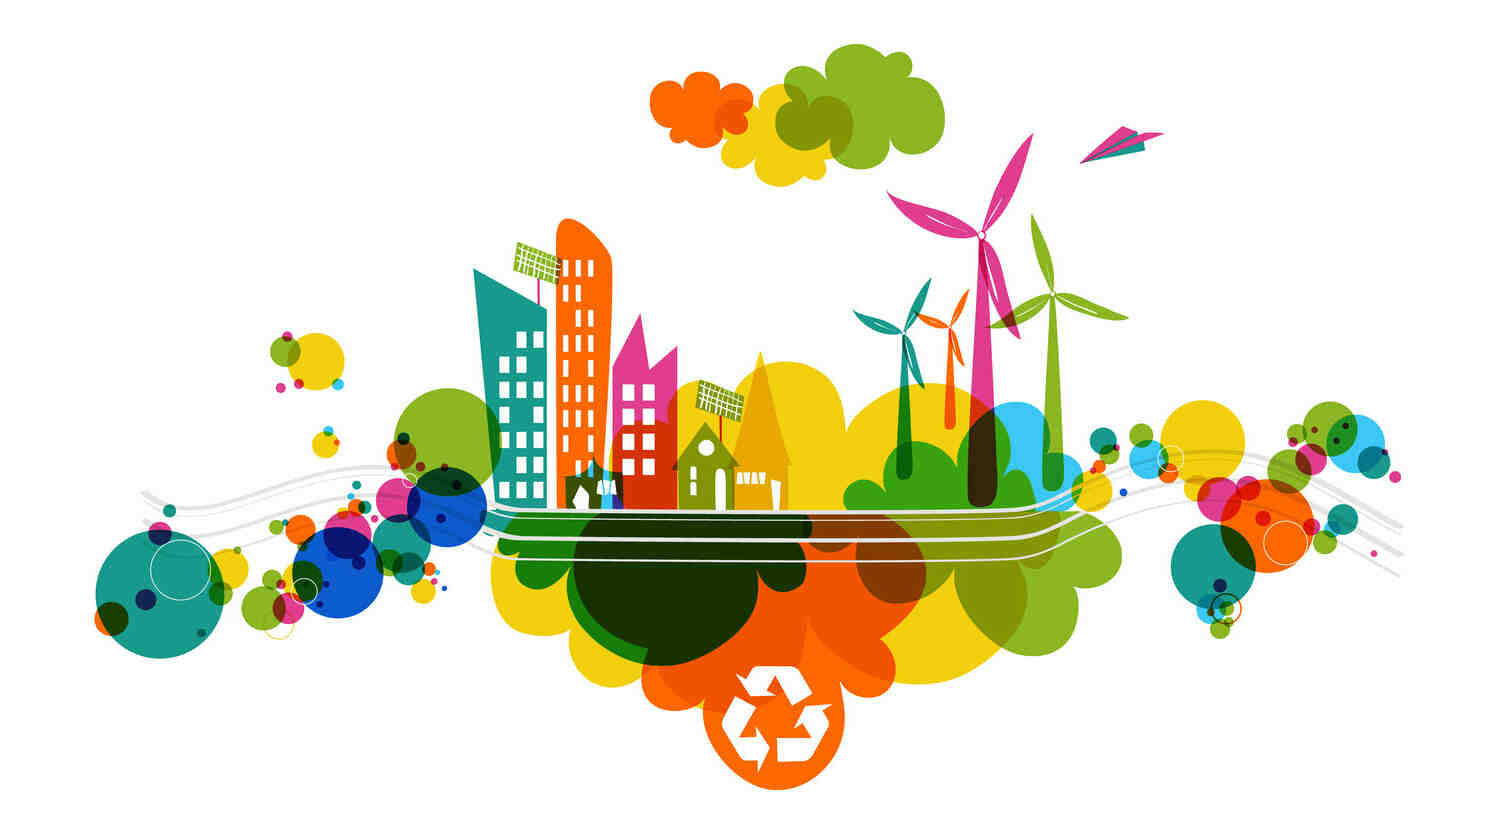 What are the 5 benefits of a healthy environment?